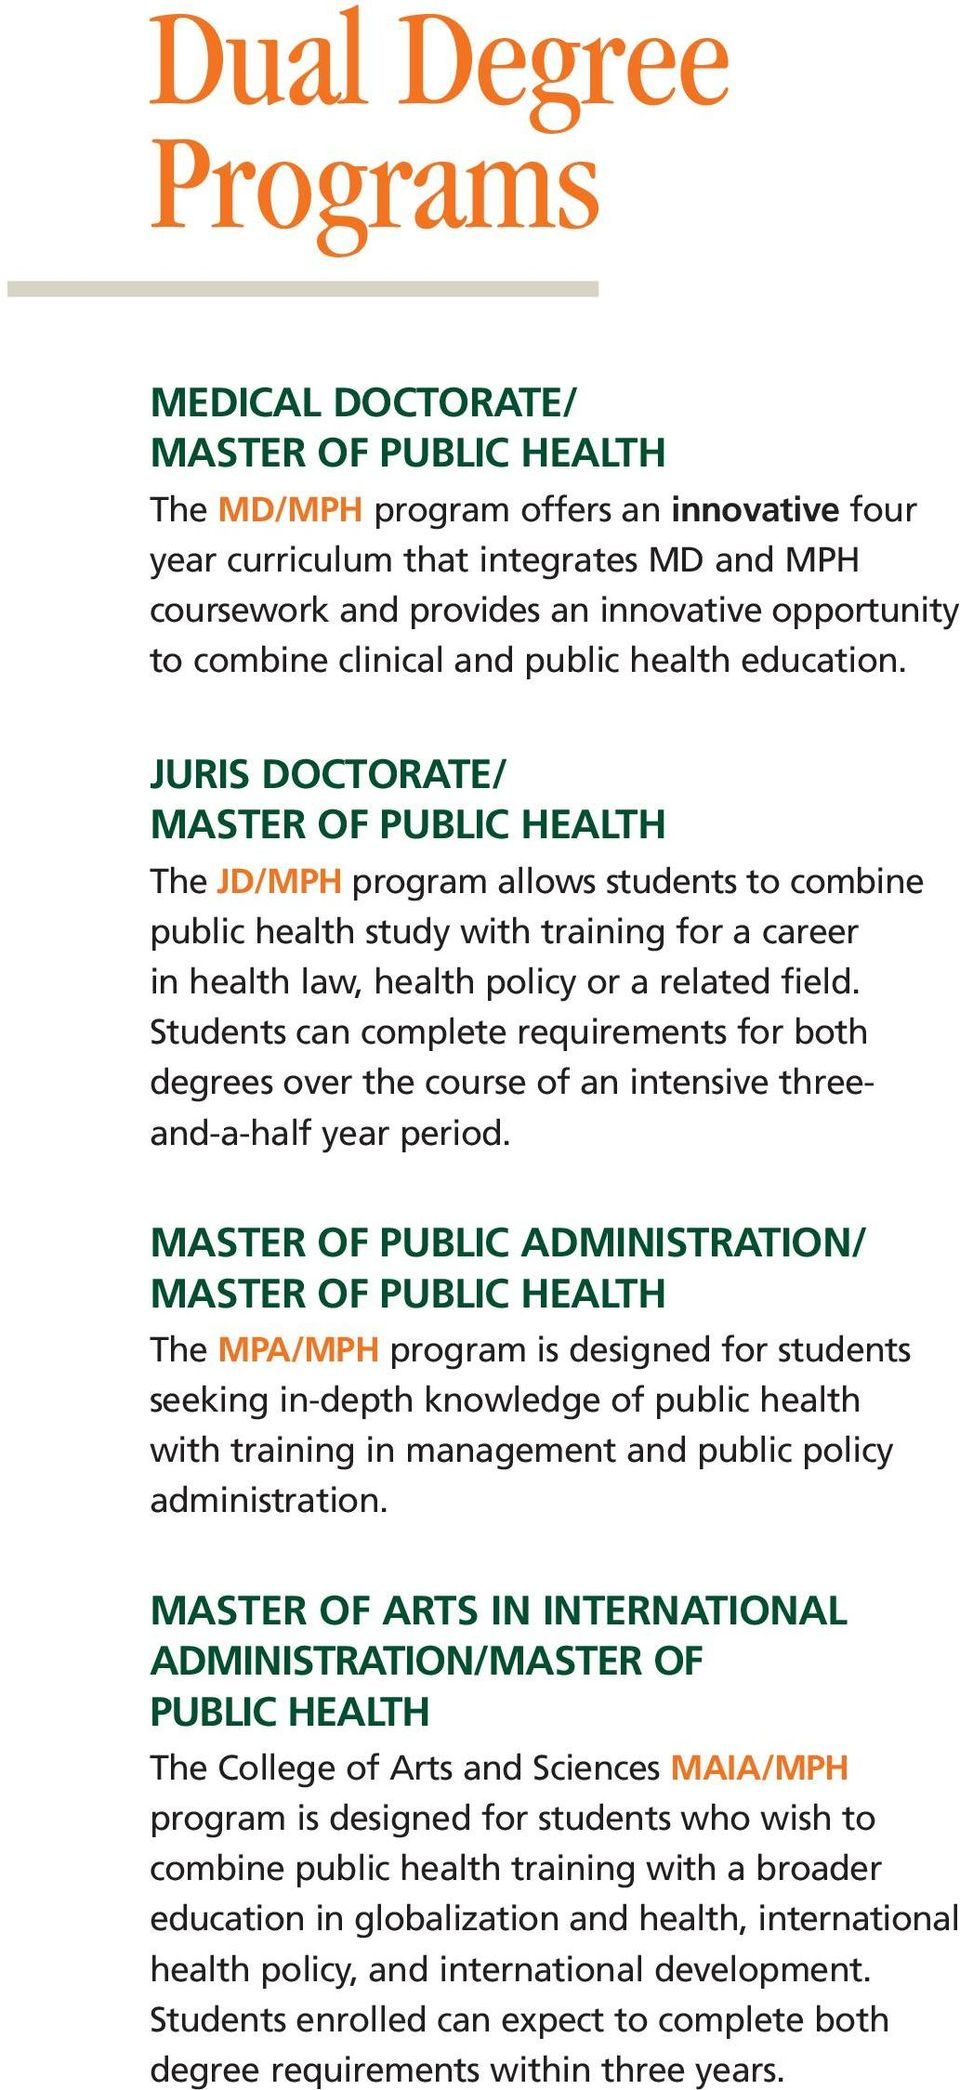 JURIS DOCTORATE/ MASTER OF PUBLIC HEALTH The JD/MPH program allows students to combine public health study with training for a career in health law, health policy or a related field.